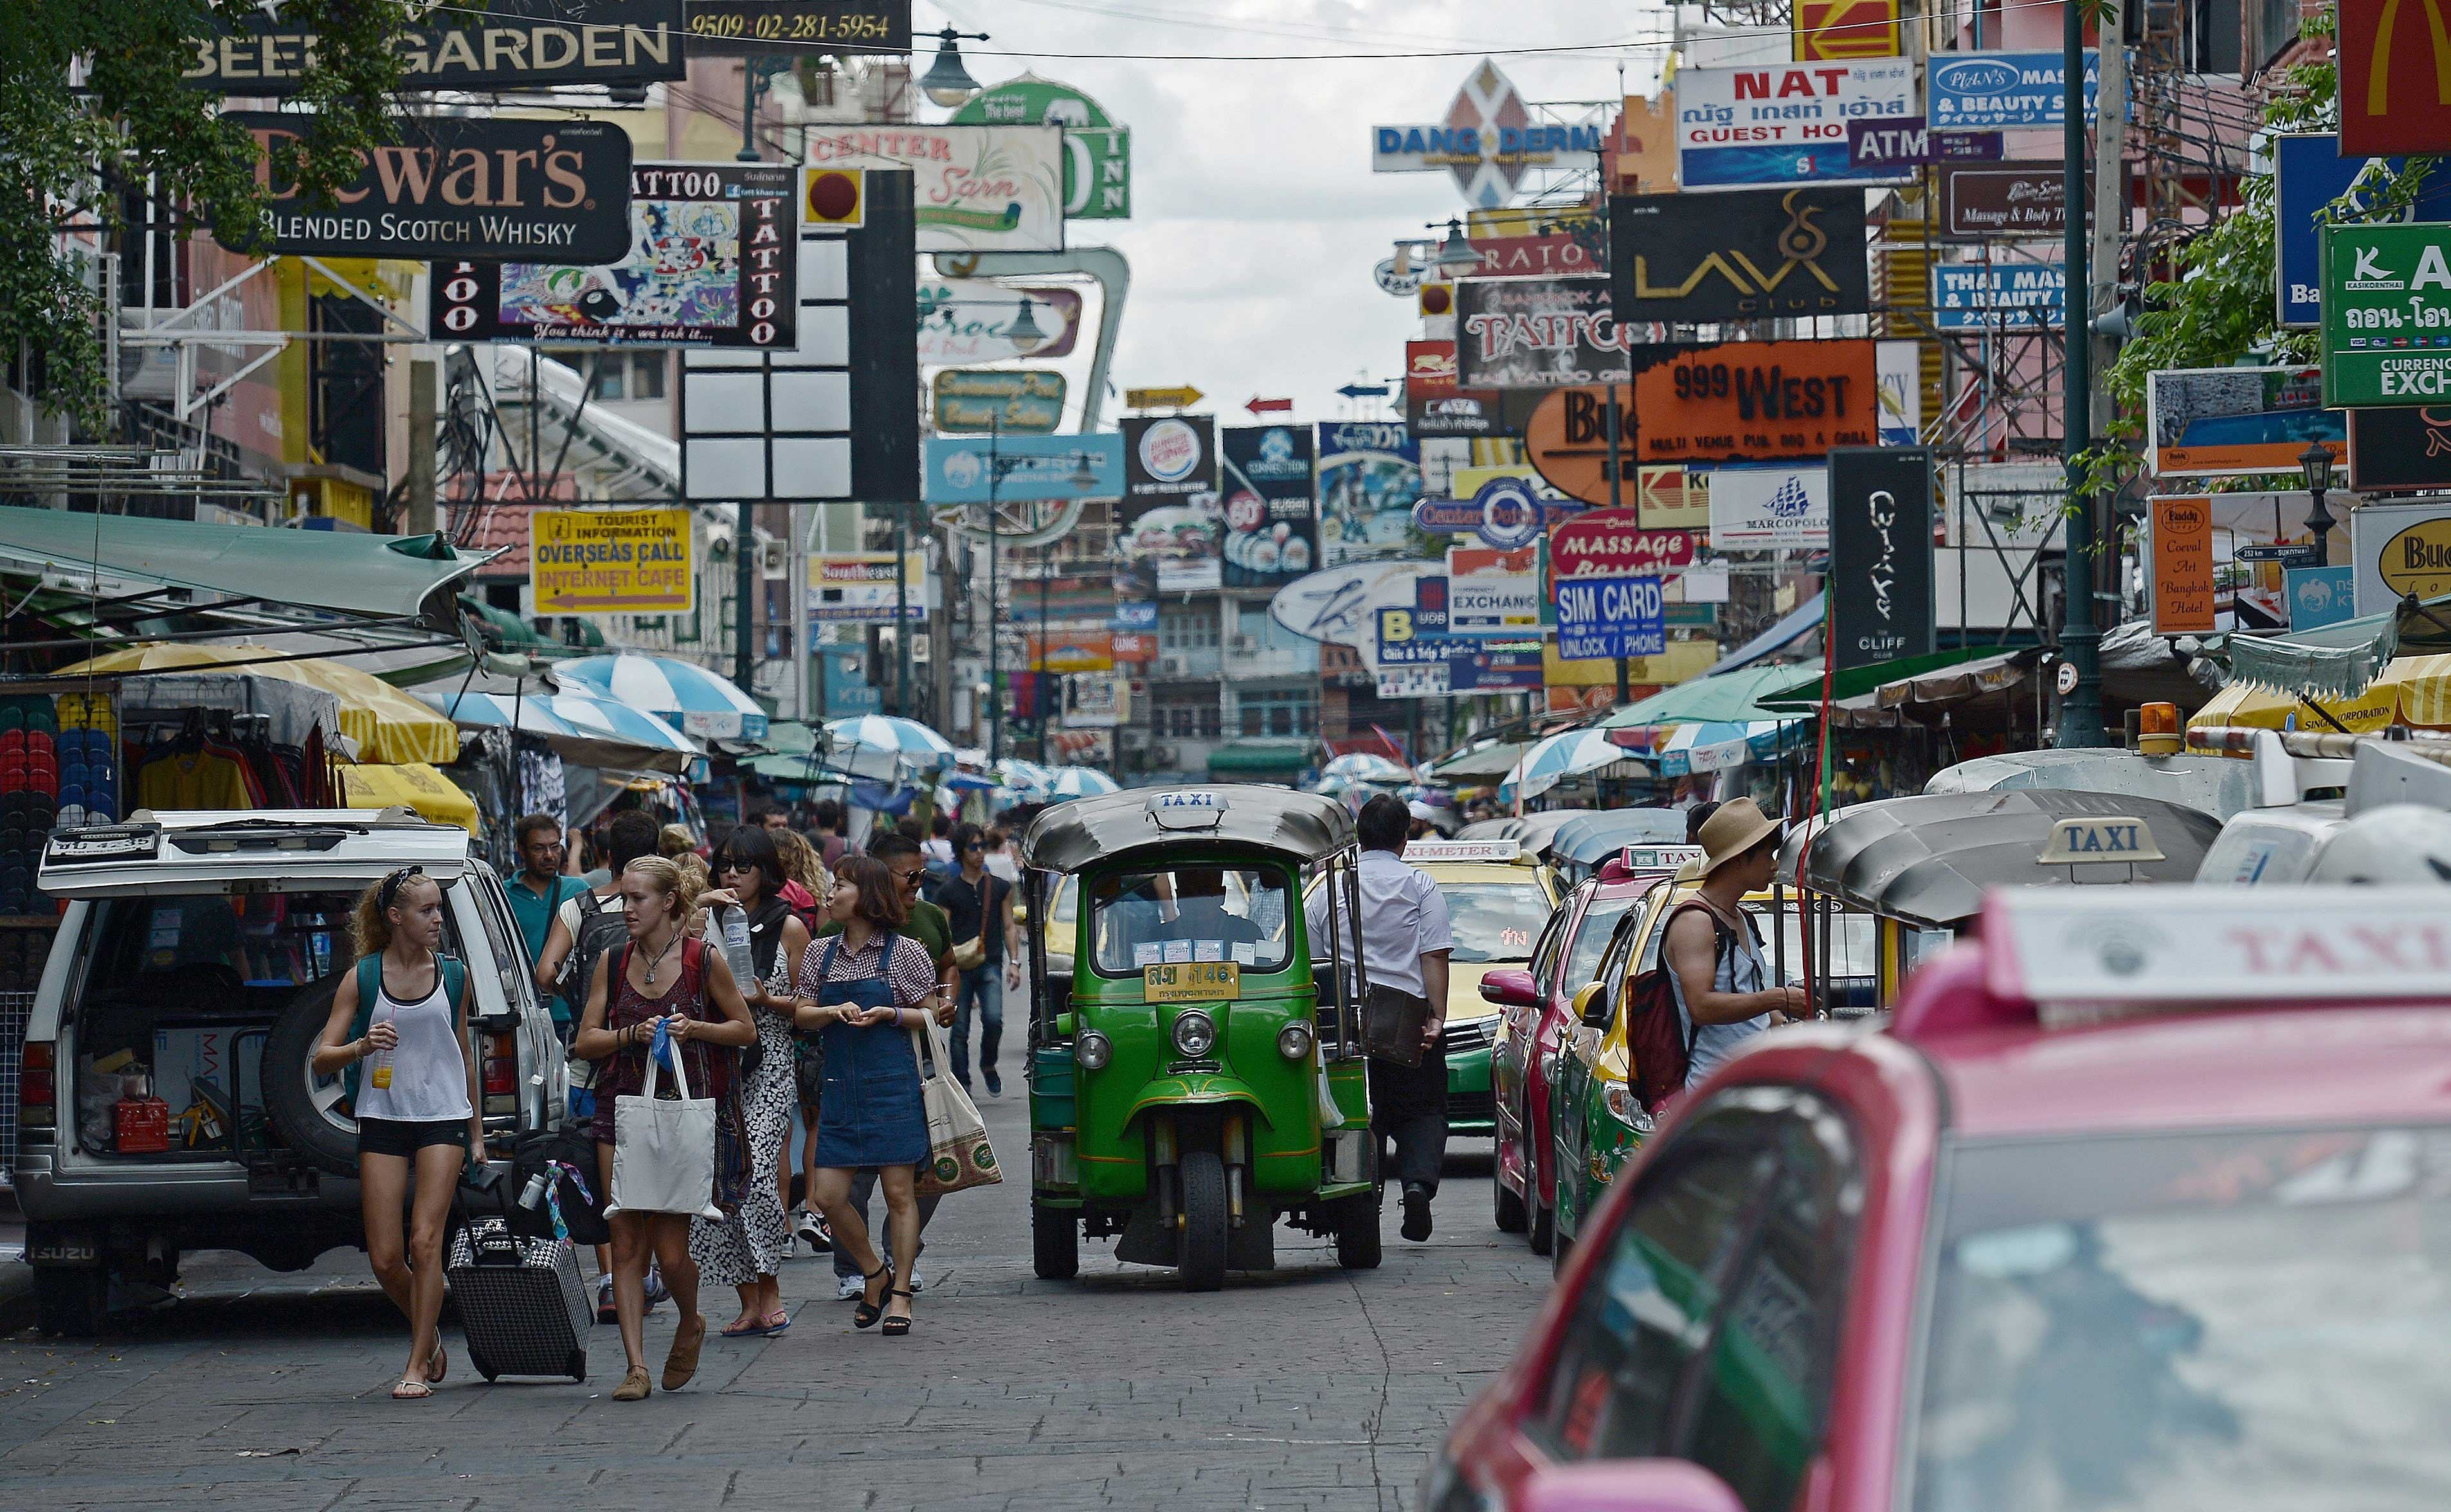 THAILAND-CHINA-UNREST-TOURISM-ECONOMY